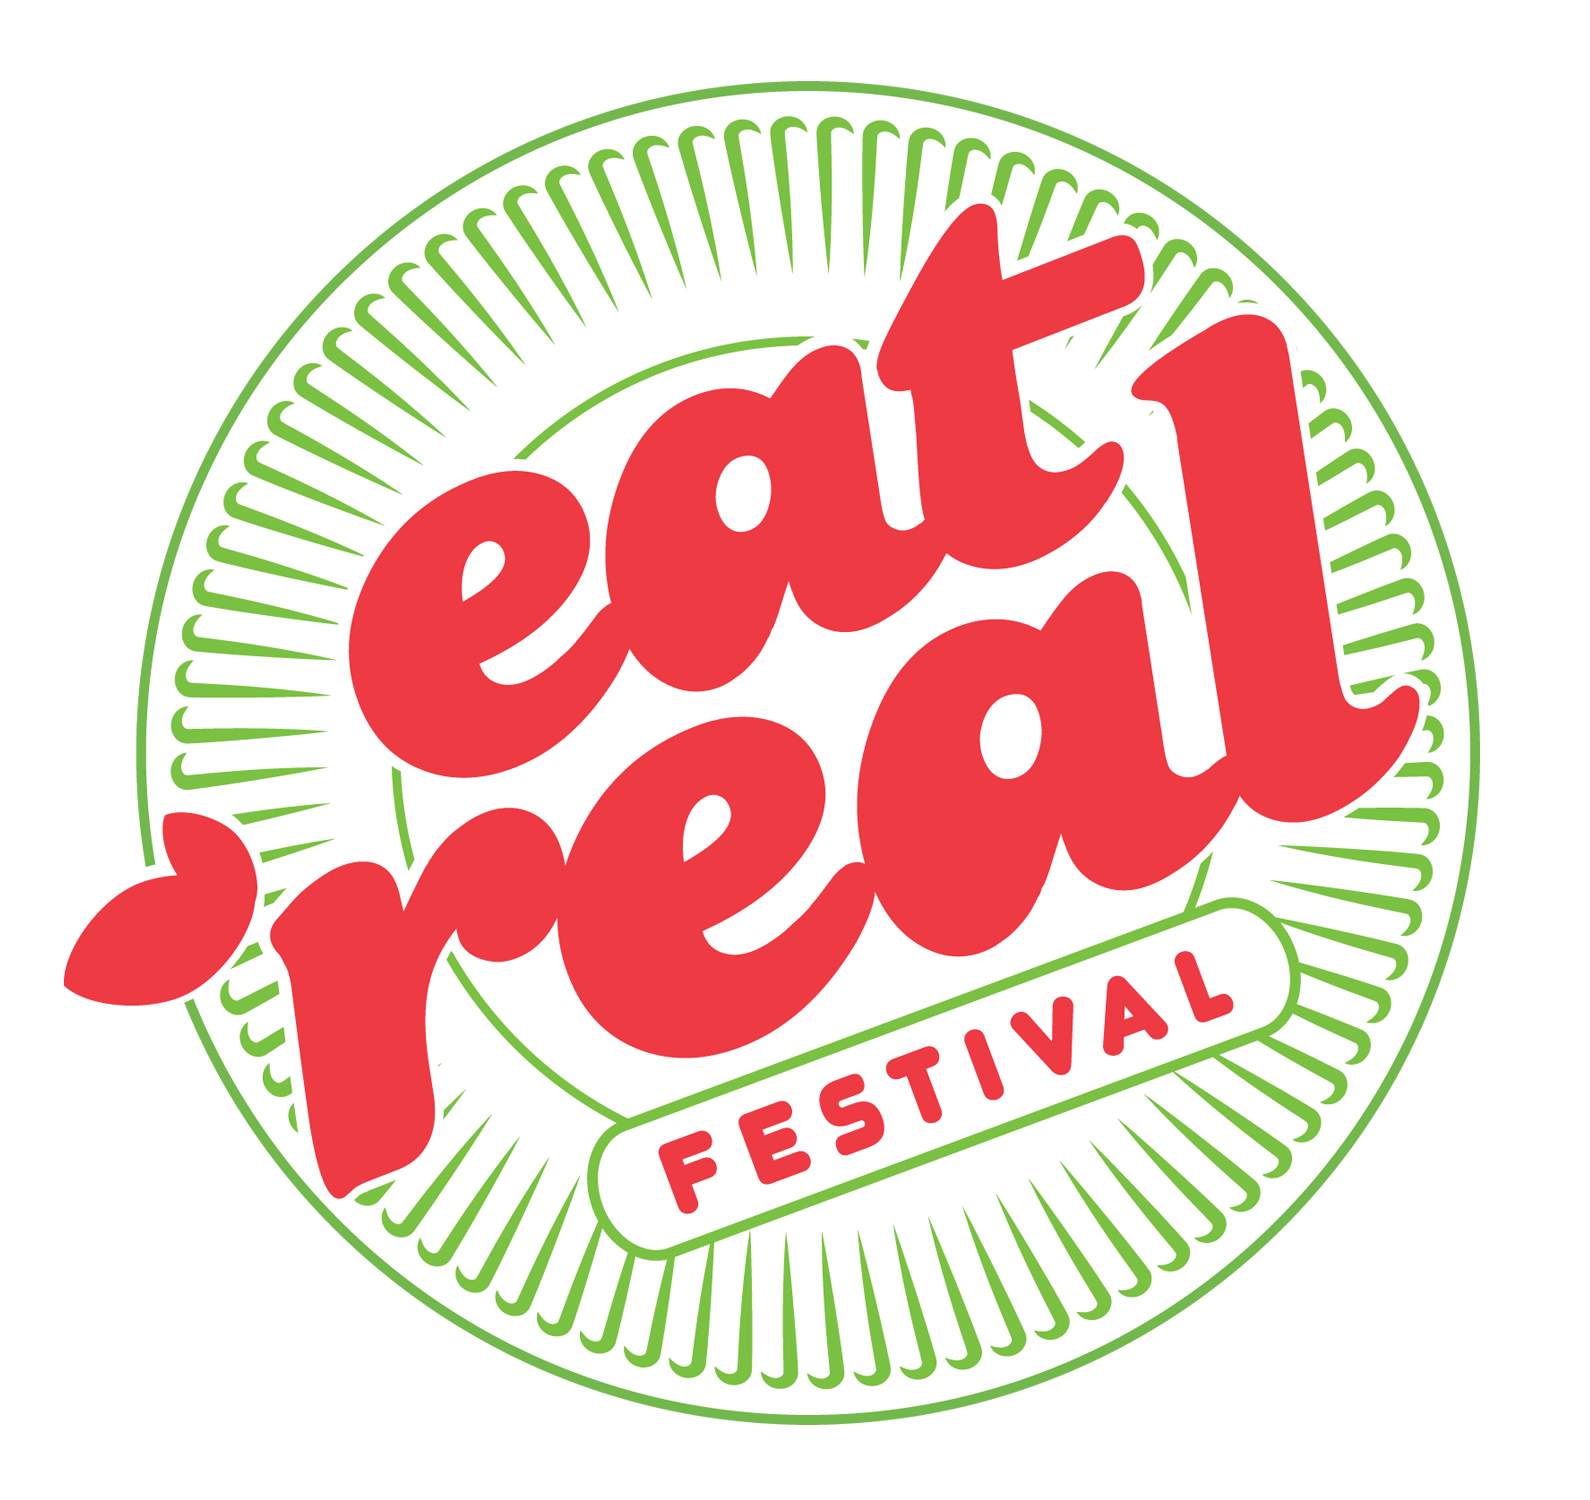 Eat Real Festival Takes Over Culver City this Weekend